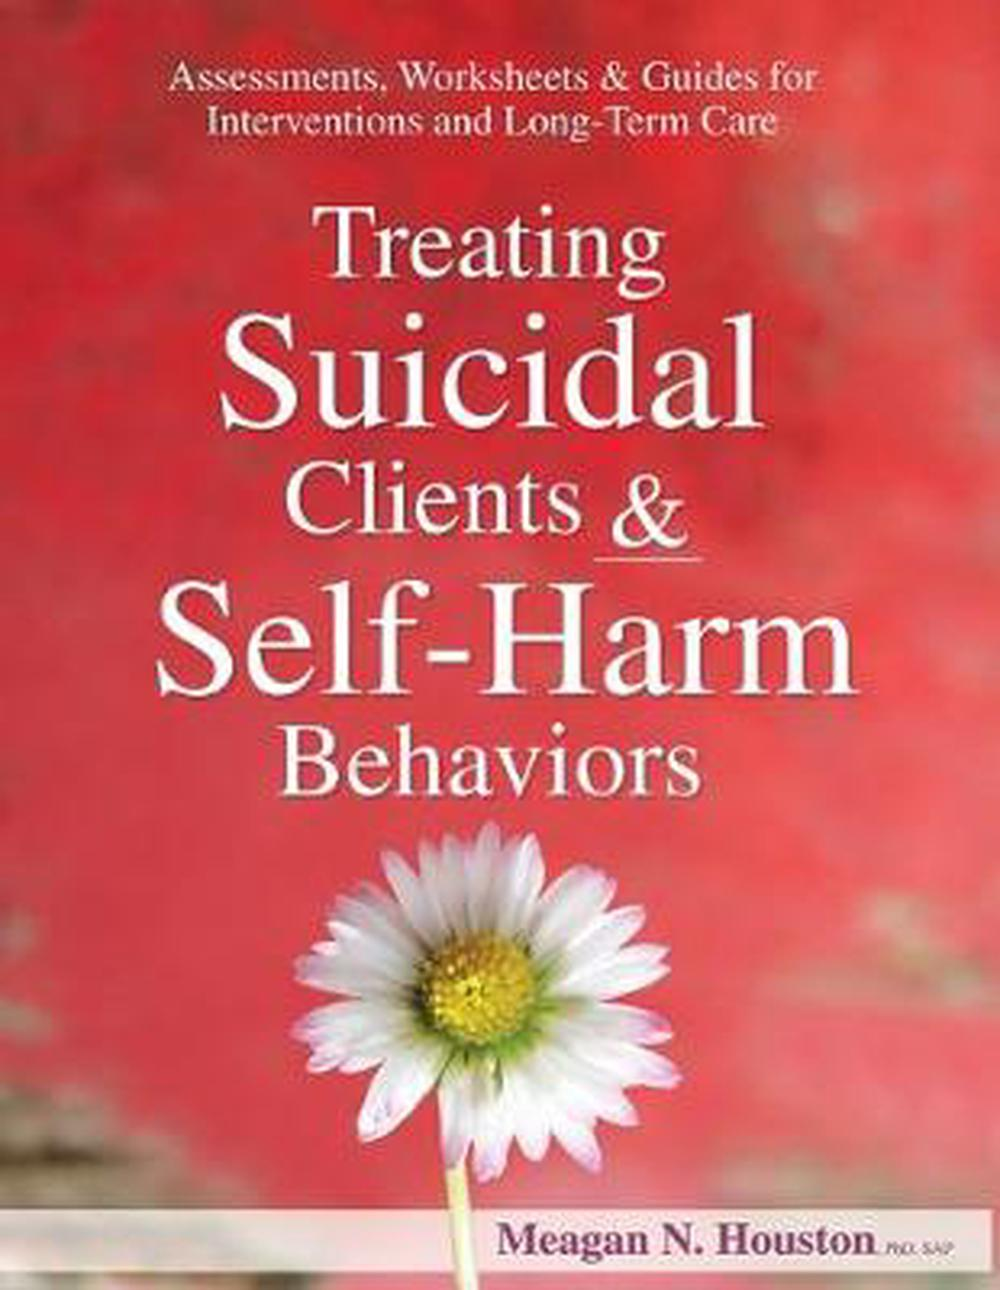 Treating Suicidal Clients & Self-Harm BehaviorsAssessments, Worksheets & Guides for Interventi...